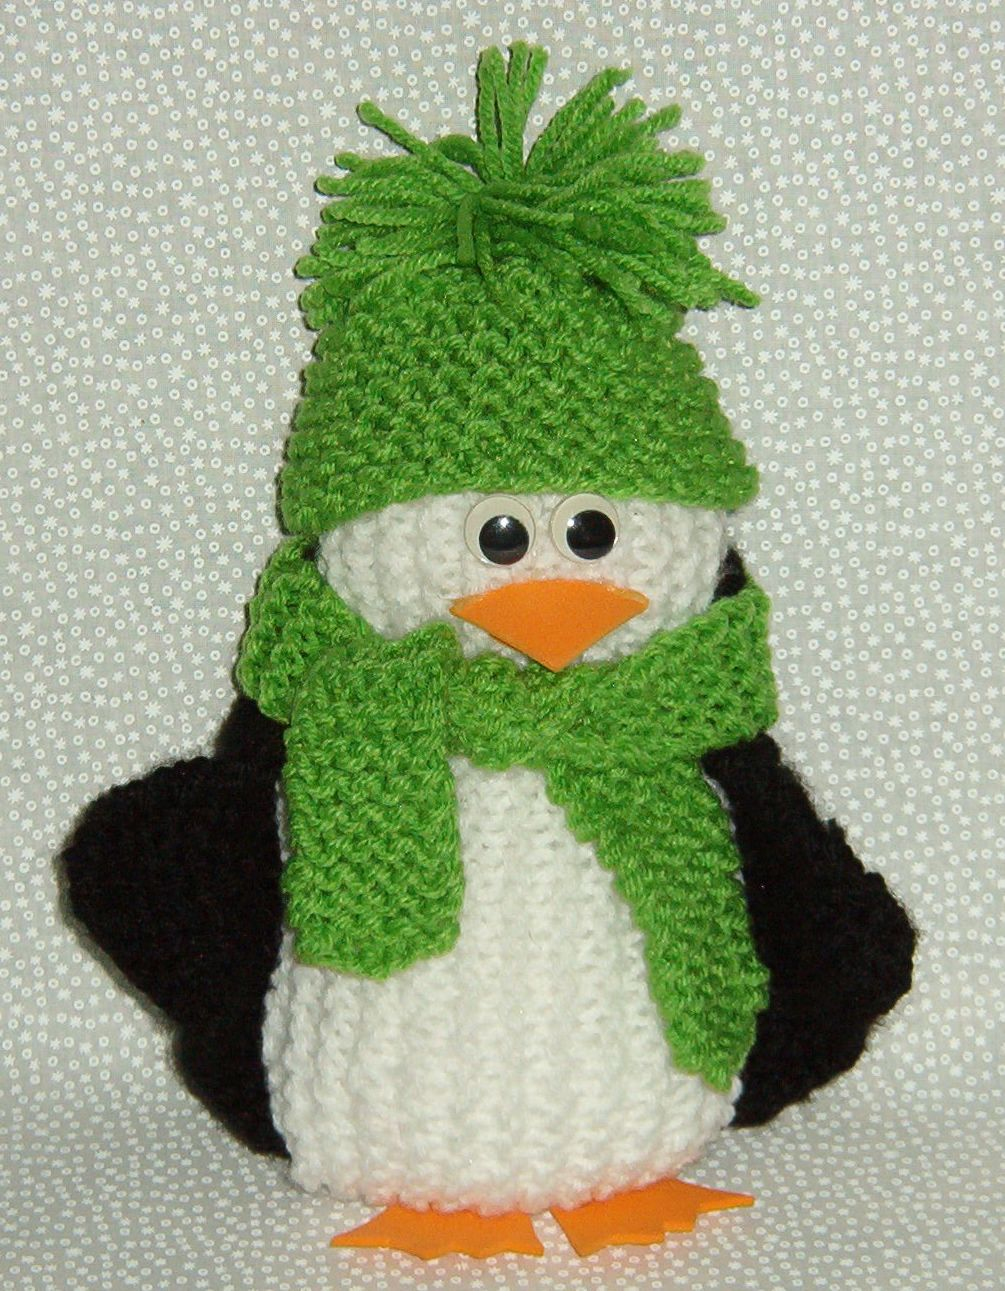 Super easy and oh so very cute this is one of my favorite free knitting pattern for staceys perfect penguin this bean bag penguin softie toy by messmerland knitting is an easy pattern knit in garter stitch and bankloansurffo Gallery